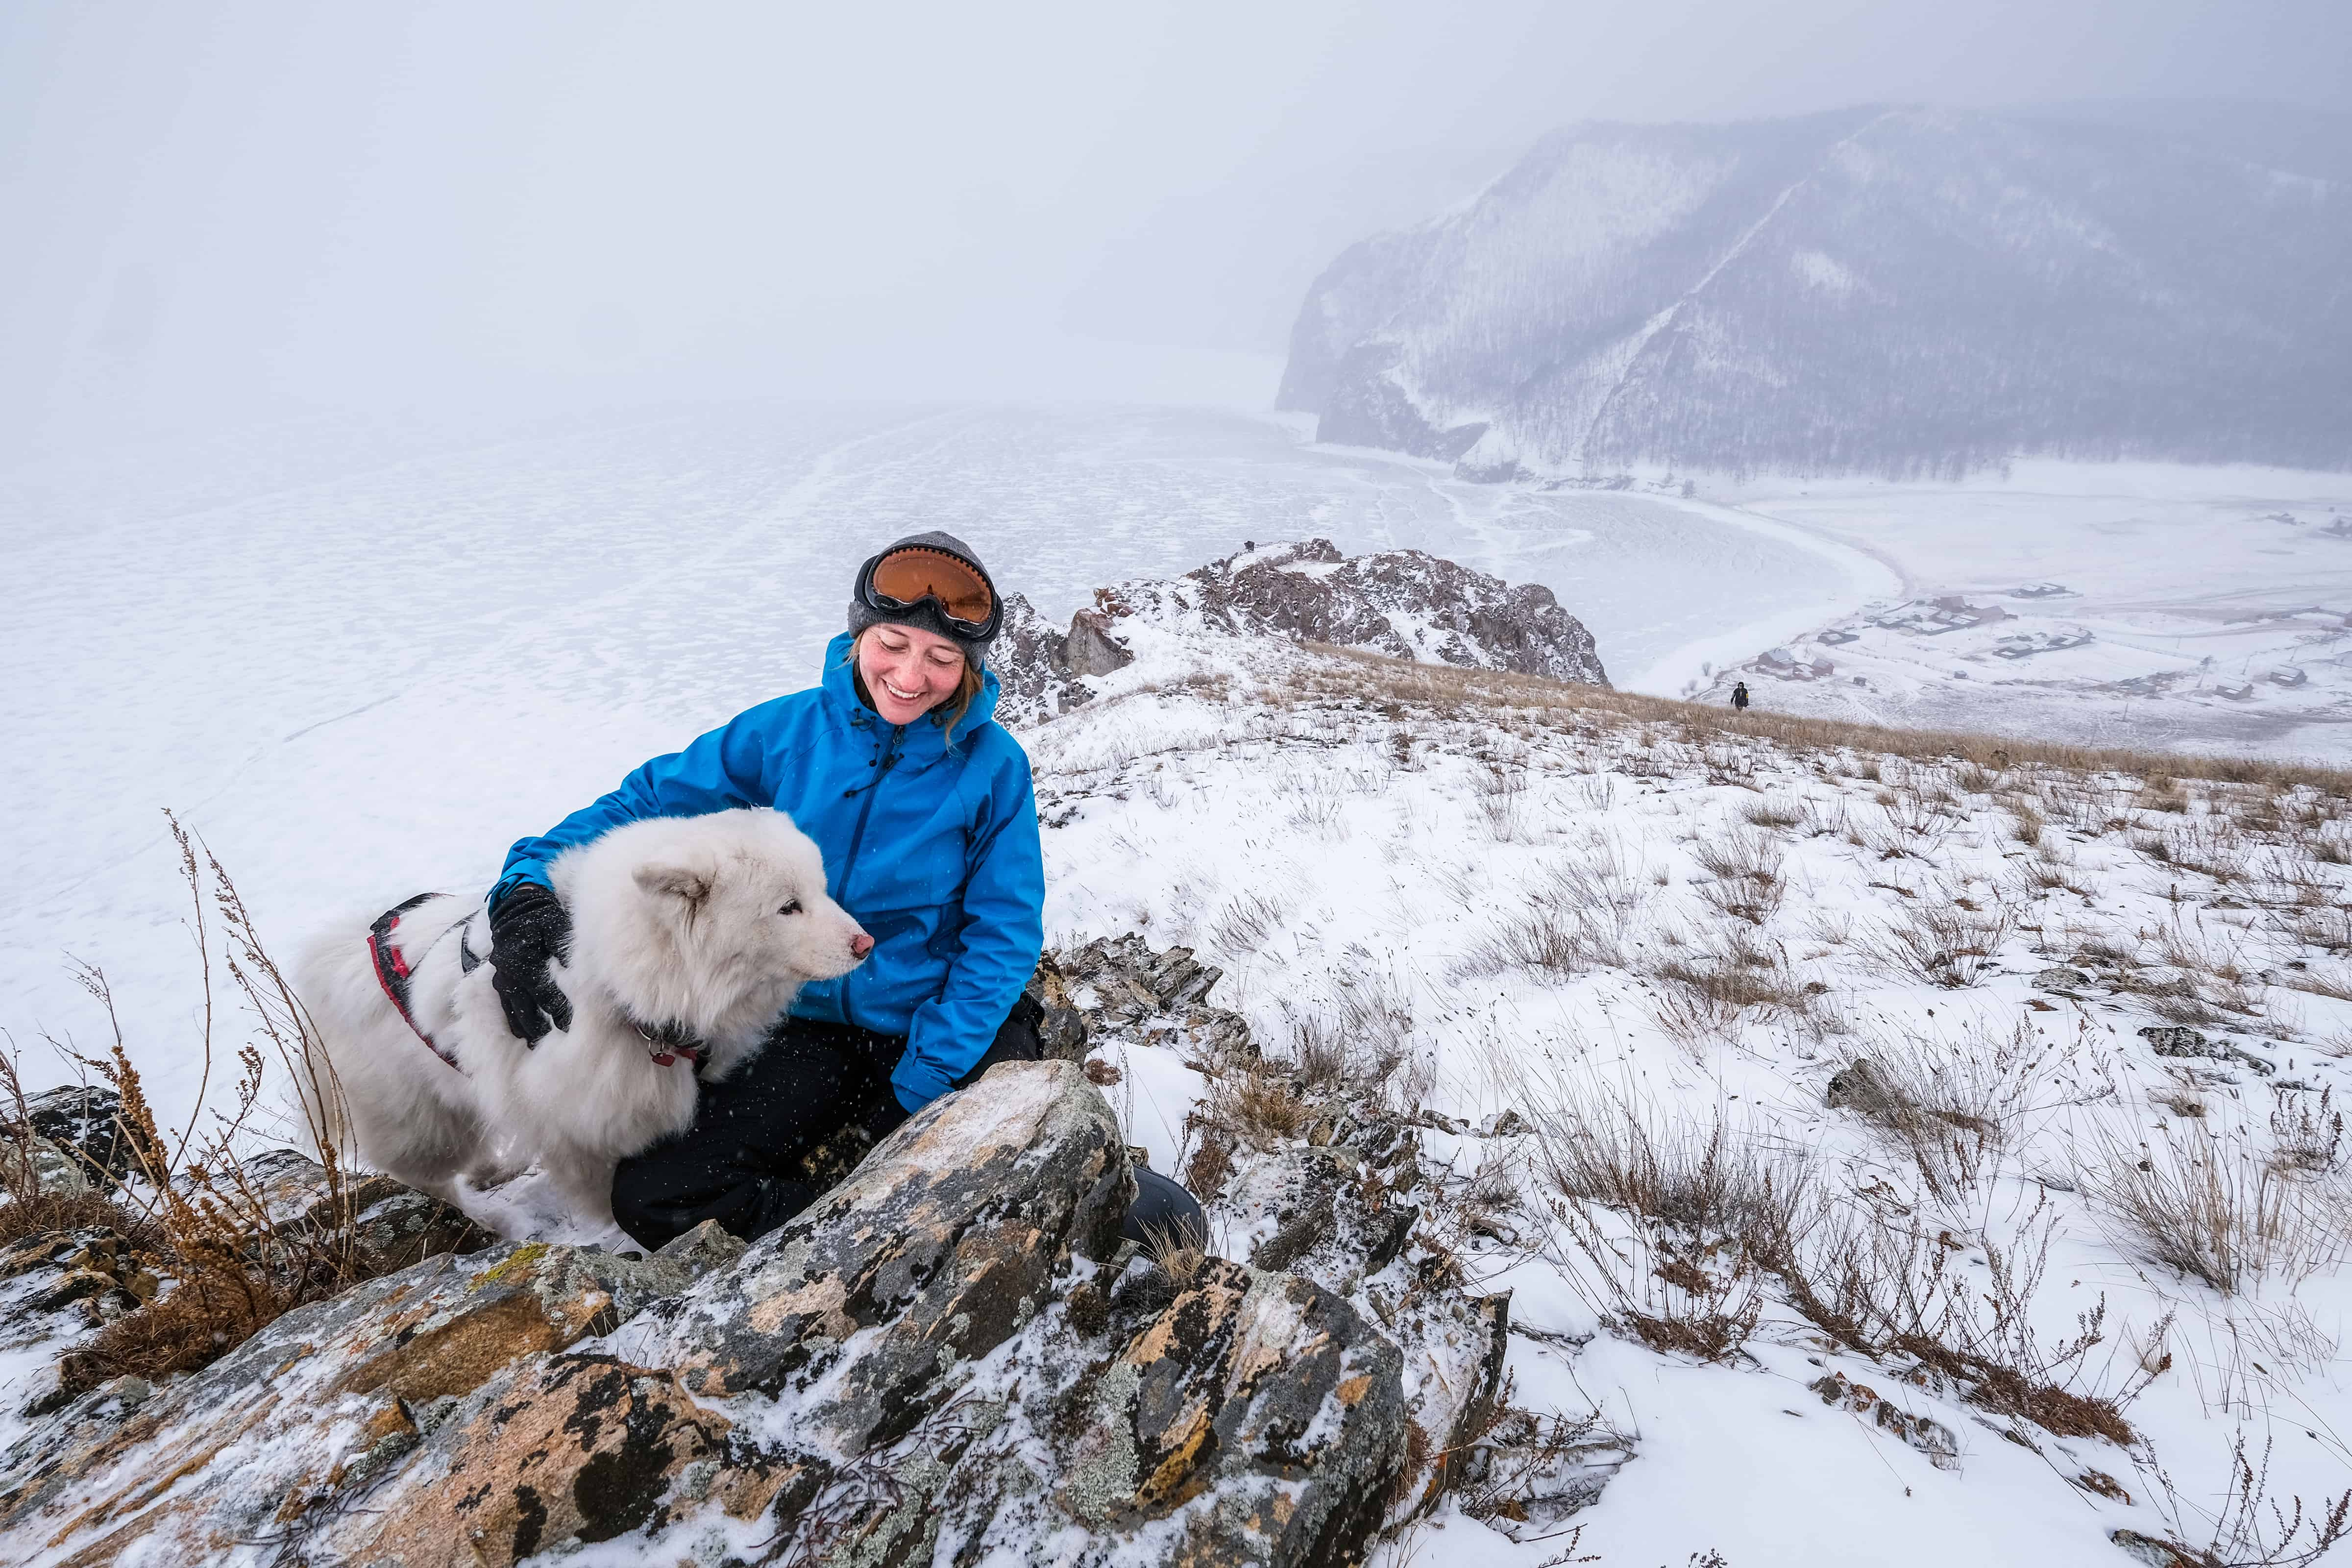 A Woman is Winter Hiking with Her Dog